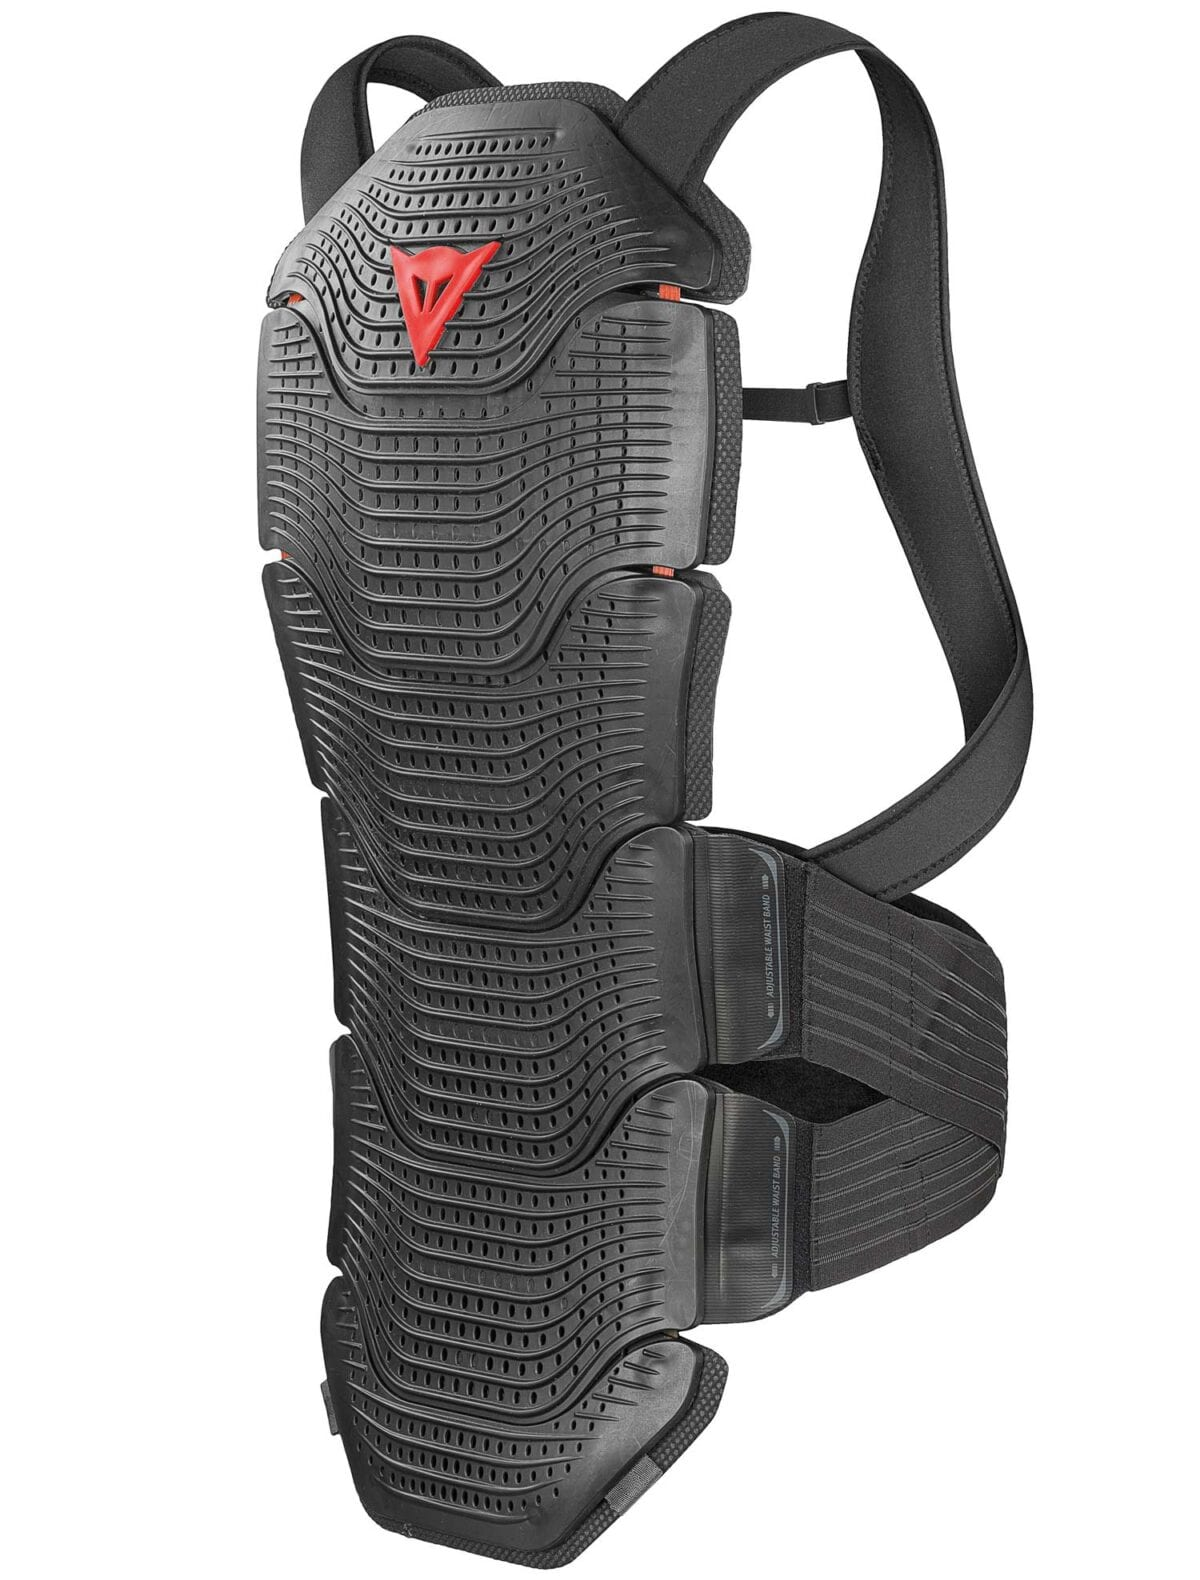 Dainese back protector001